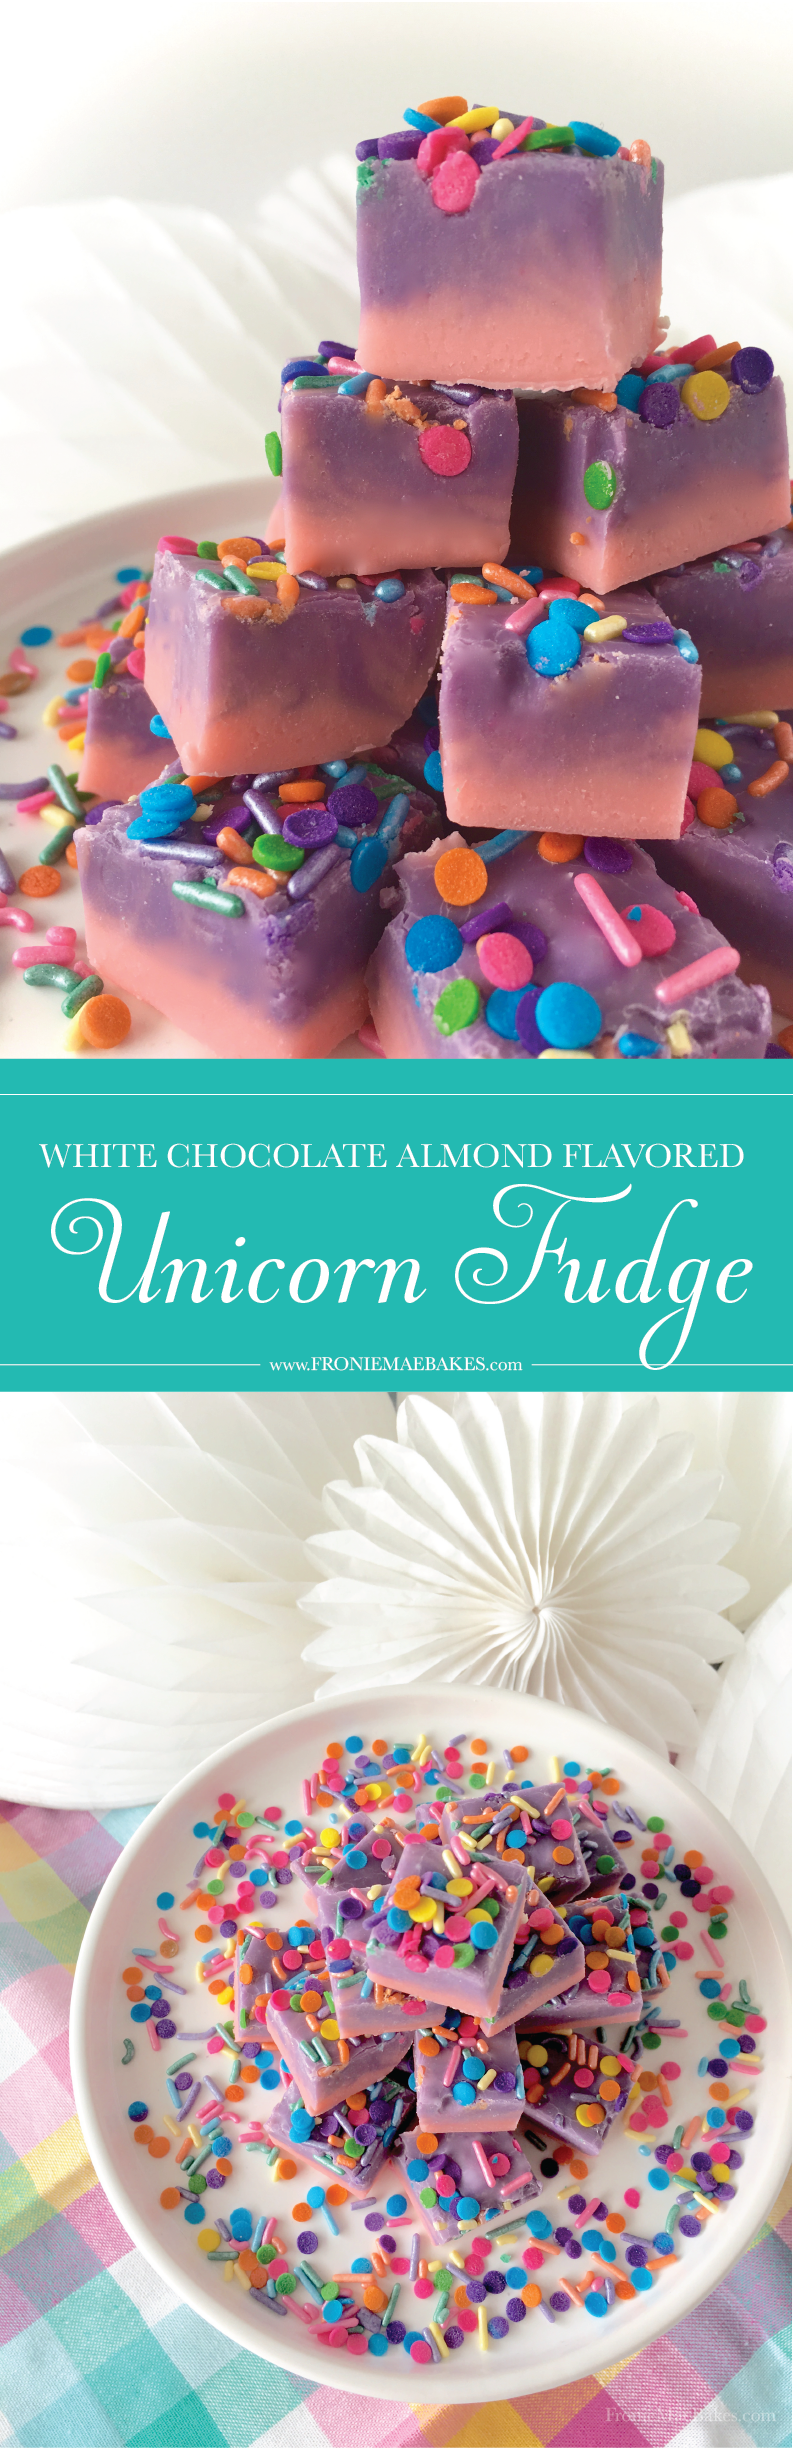 Make this incredibly easy White Chocolate Almond Flavored Unicorn Fudge Recipe for birthday parties or other colorful themed gatherings. www.froniemaebakes.com